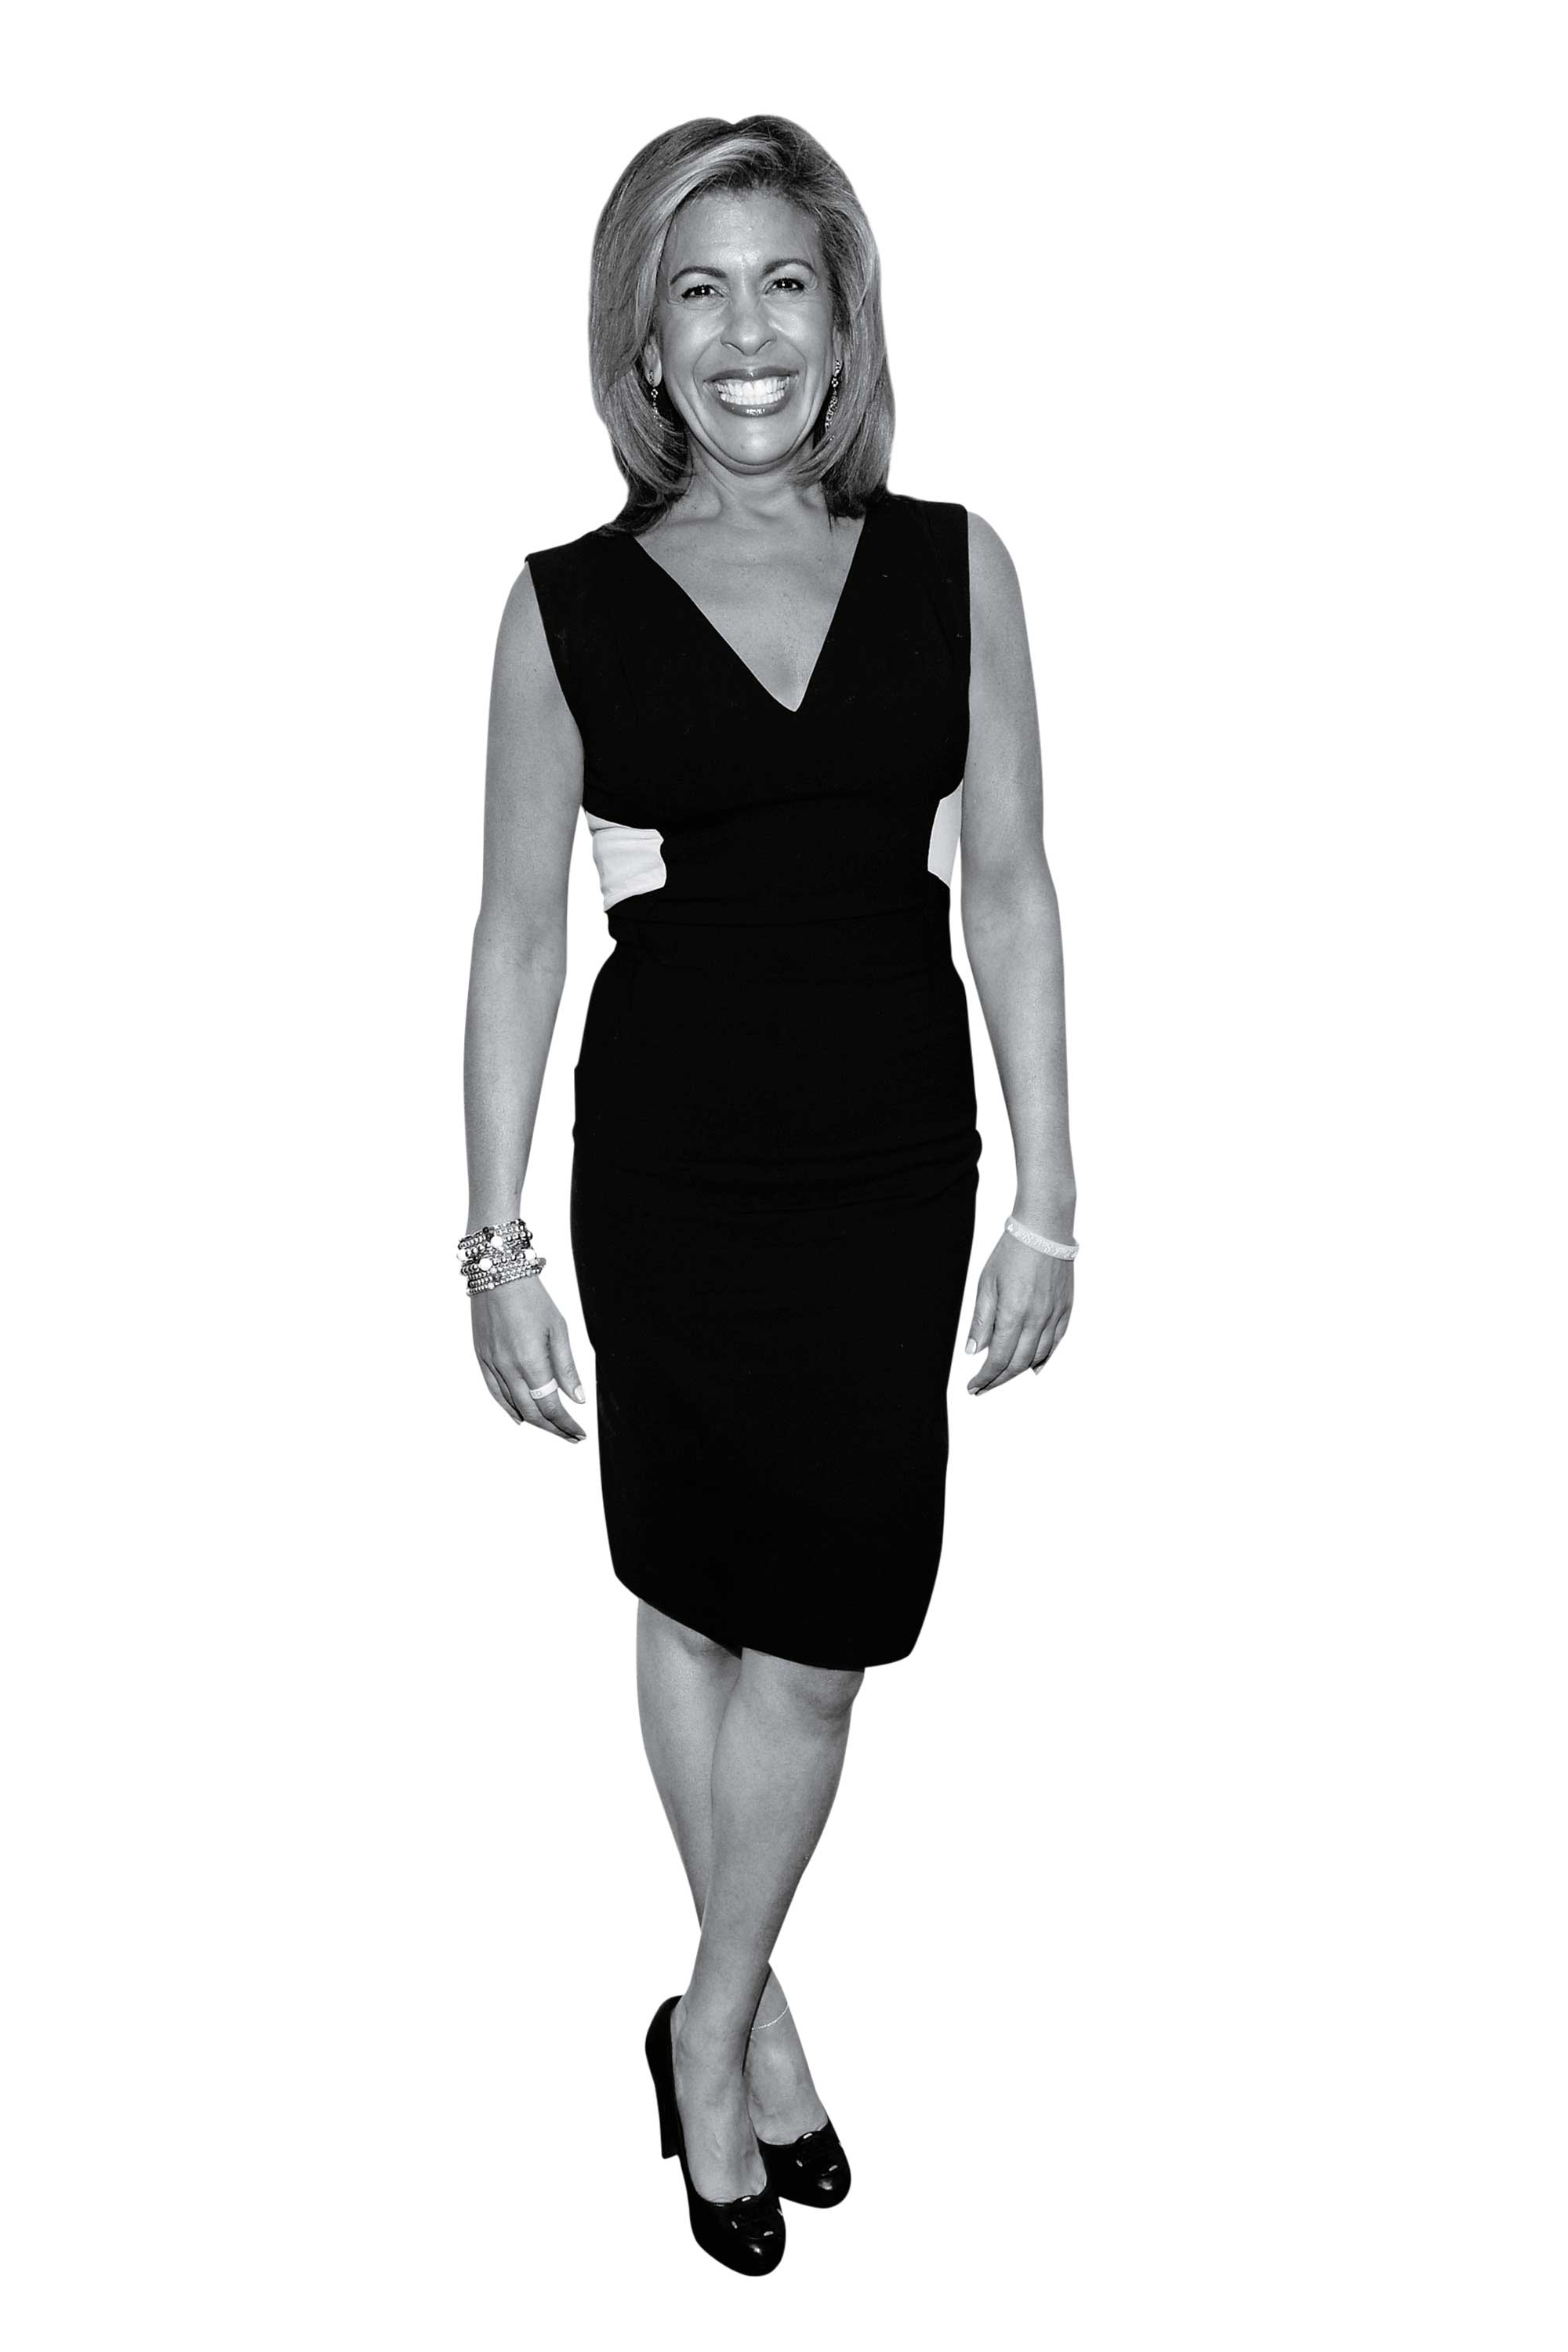 Hoda Kotb The co-host of the Today show's fourth hour talks about her new book, Where We Belong, career paths and how to drink wine on television